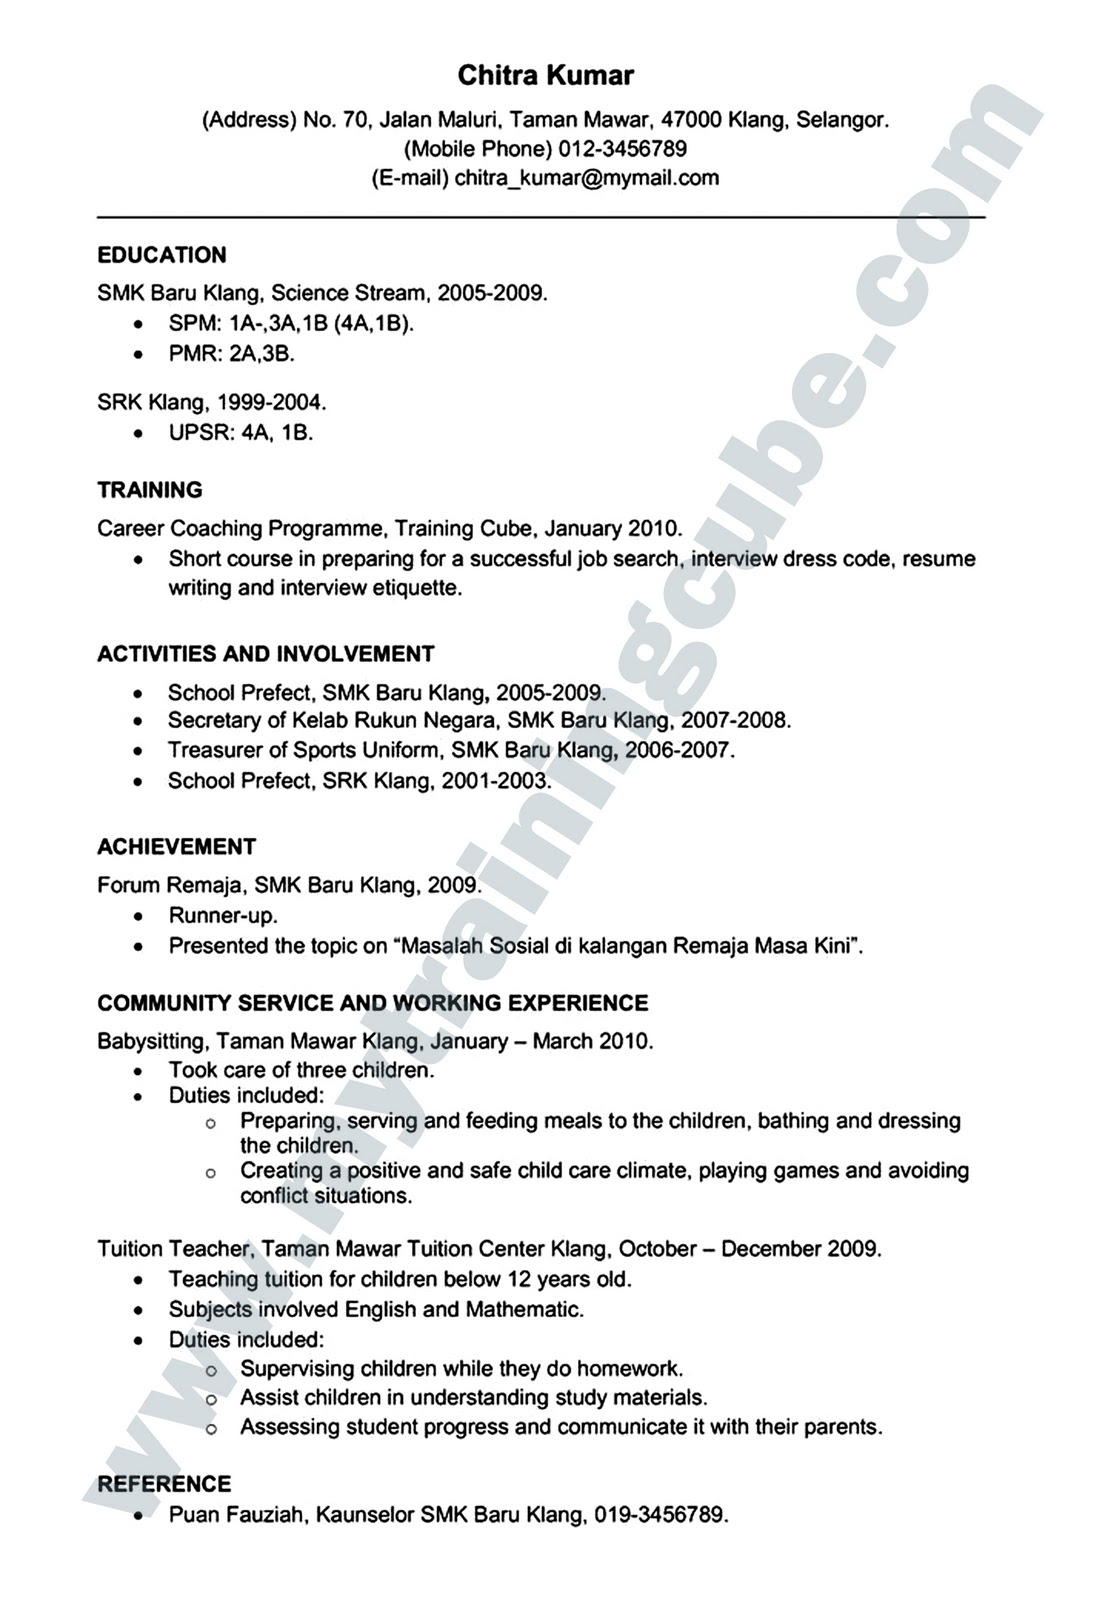 contoh offer letter bahasa malaysia formal letter spm contoh offer letter bahasa malaysia cv outline contoh 765